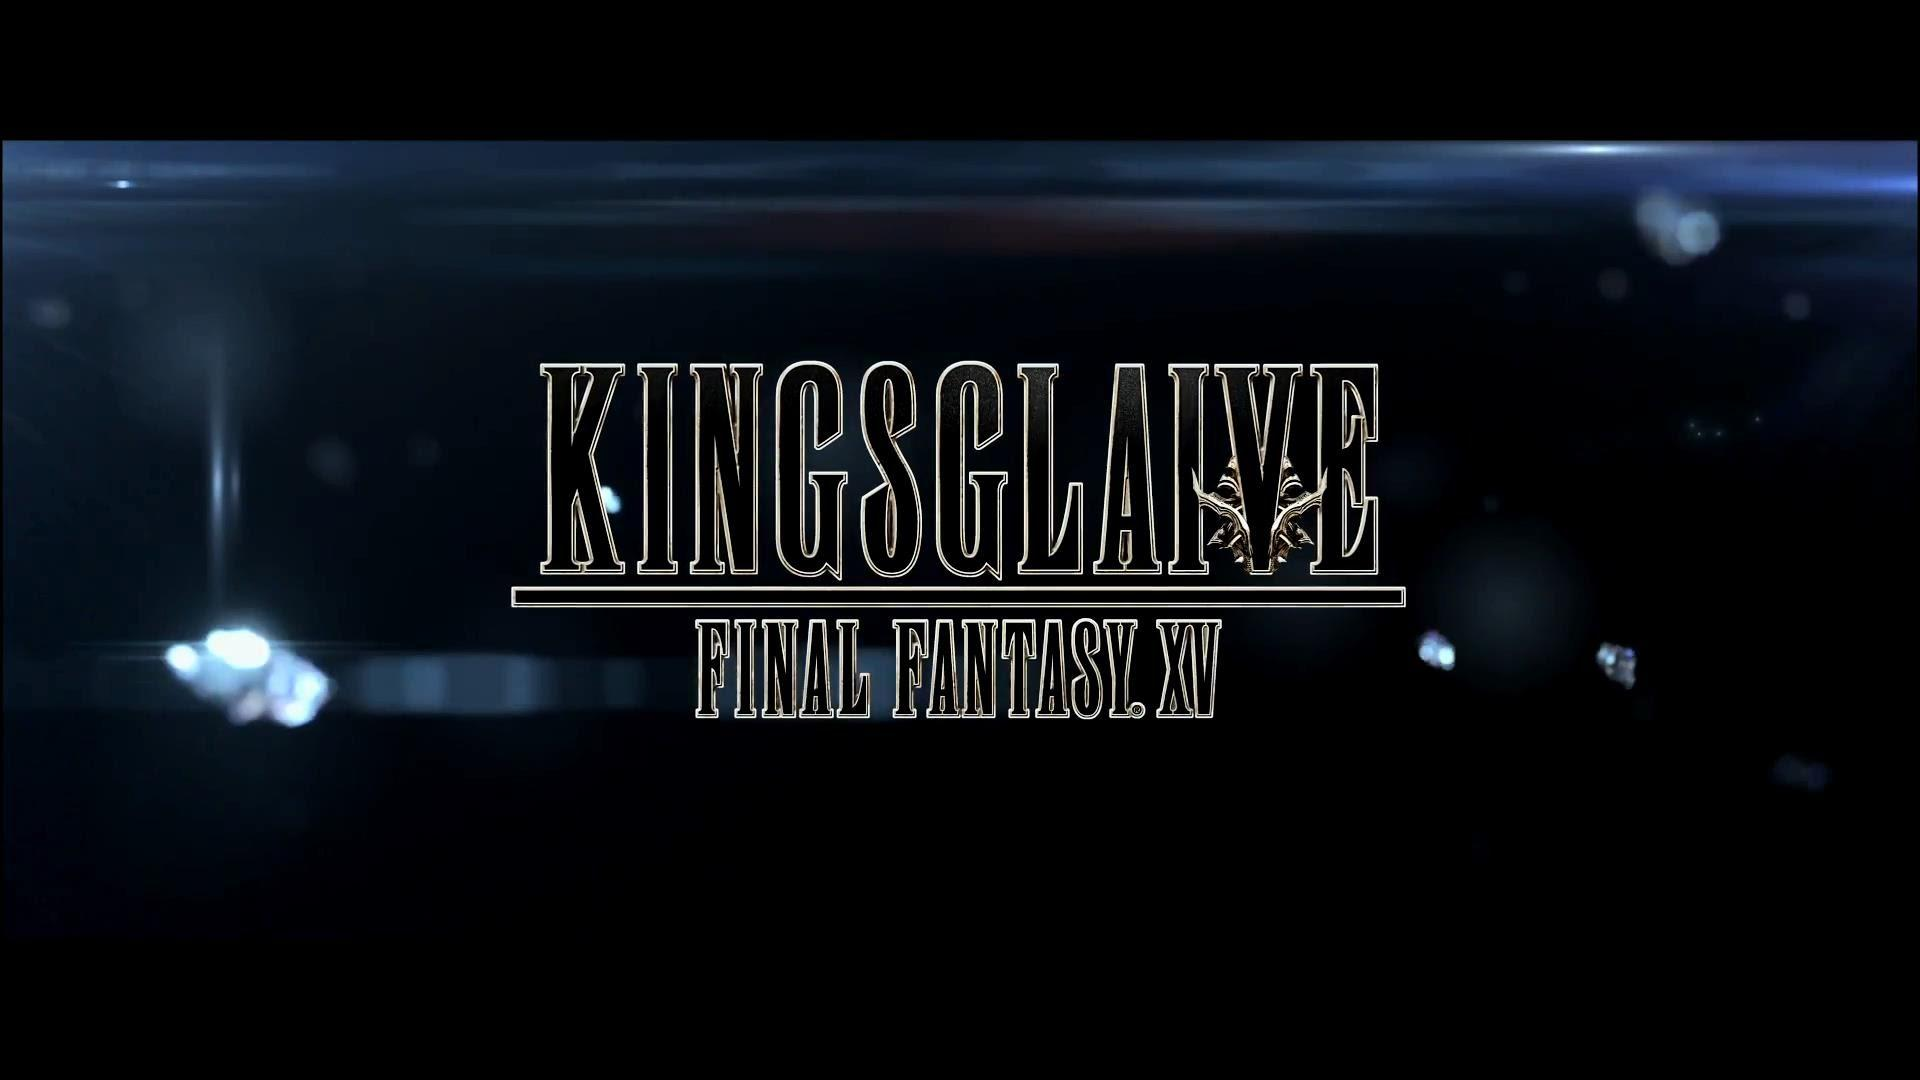 Kingslaive Final Fantasy XV in theatres Aug. 26 for one week.